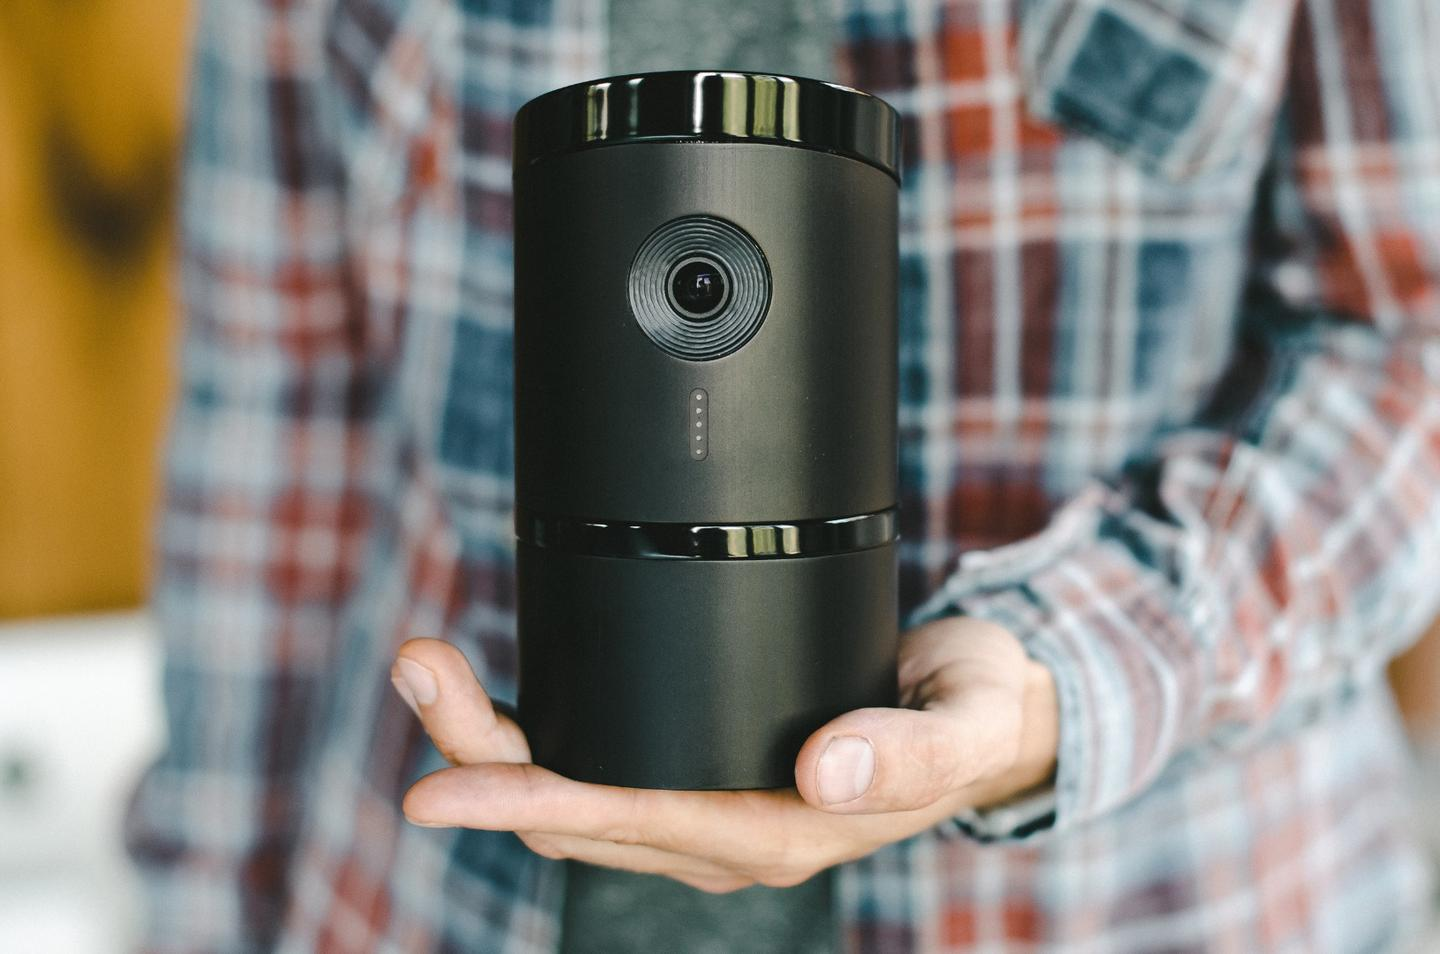 The Angee cam can record and stream images